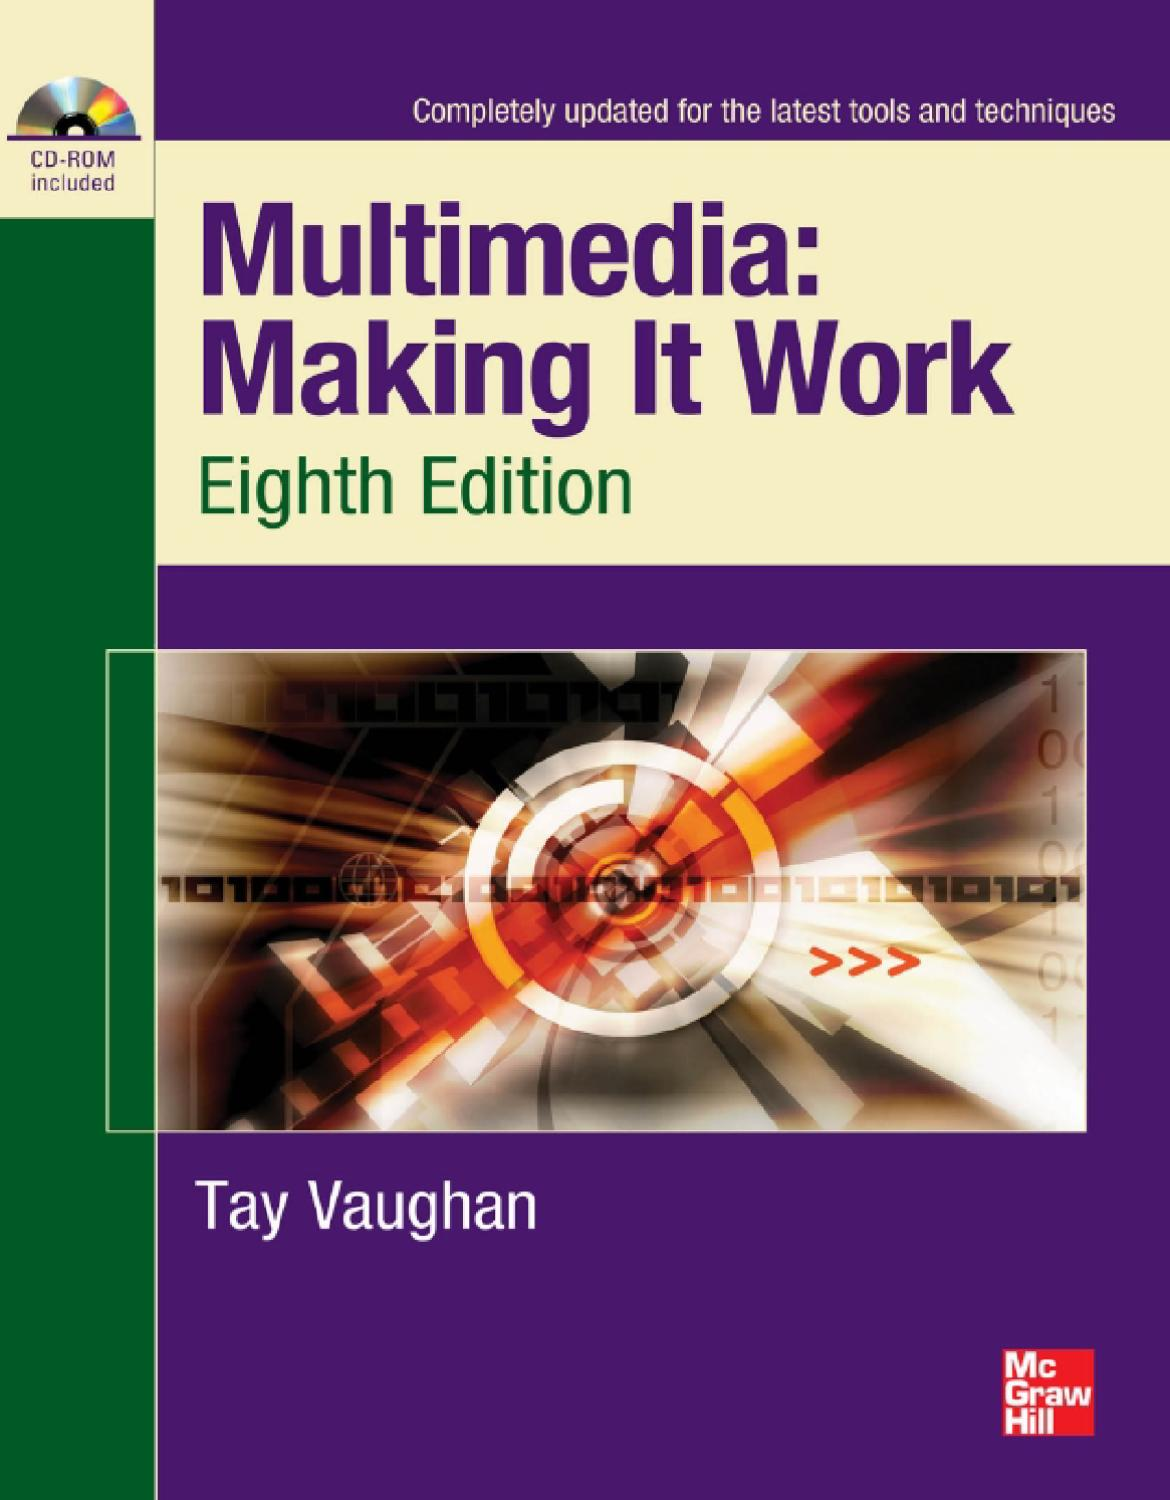 Multimedia making it work eighth edition by victor gutierrez issuu fandeluxe Choice Image